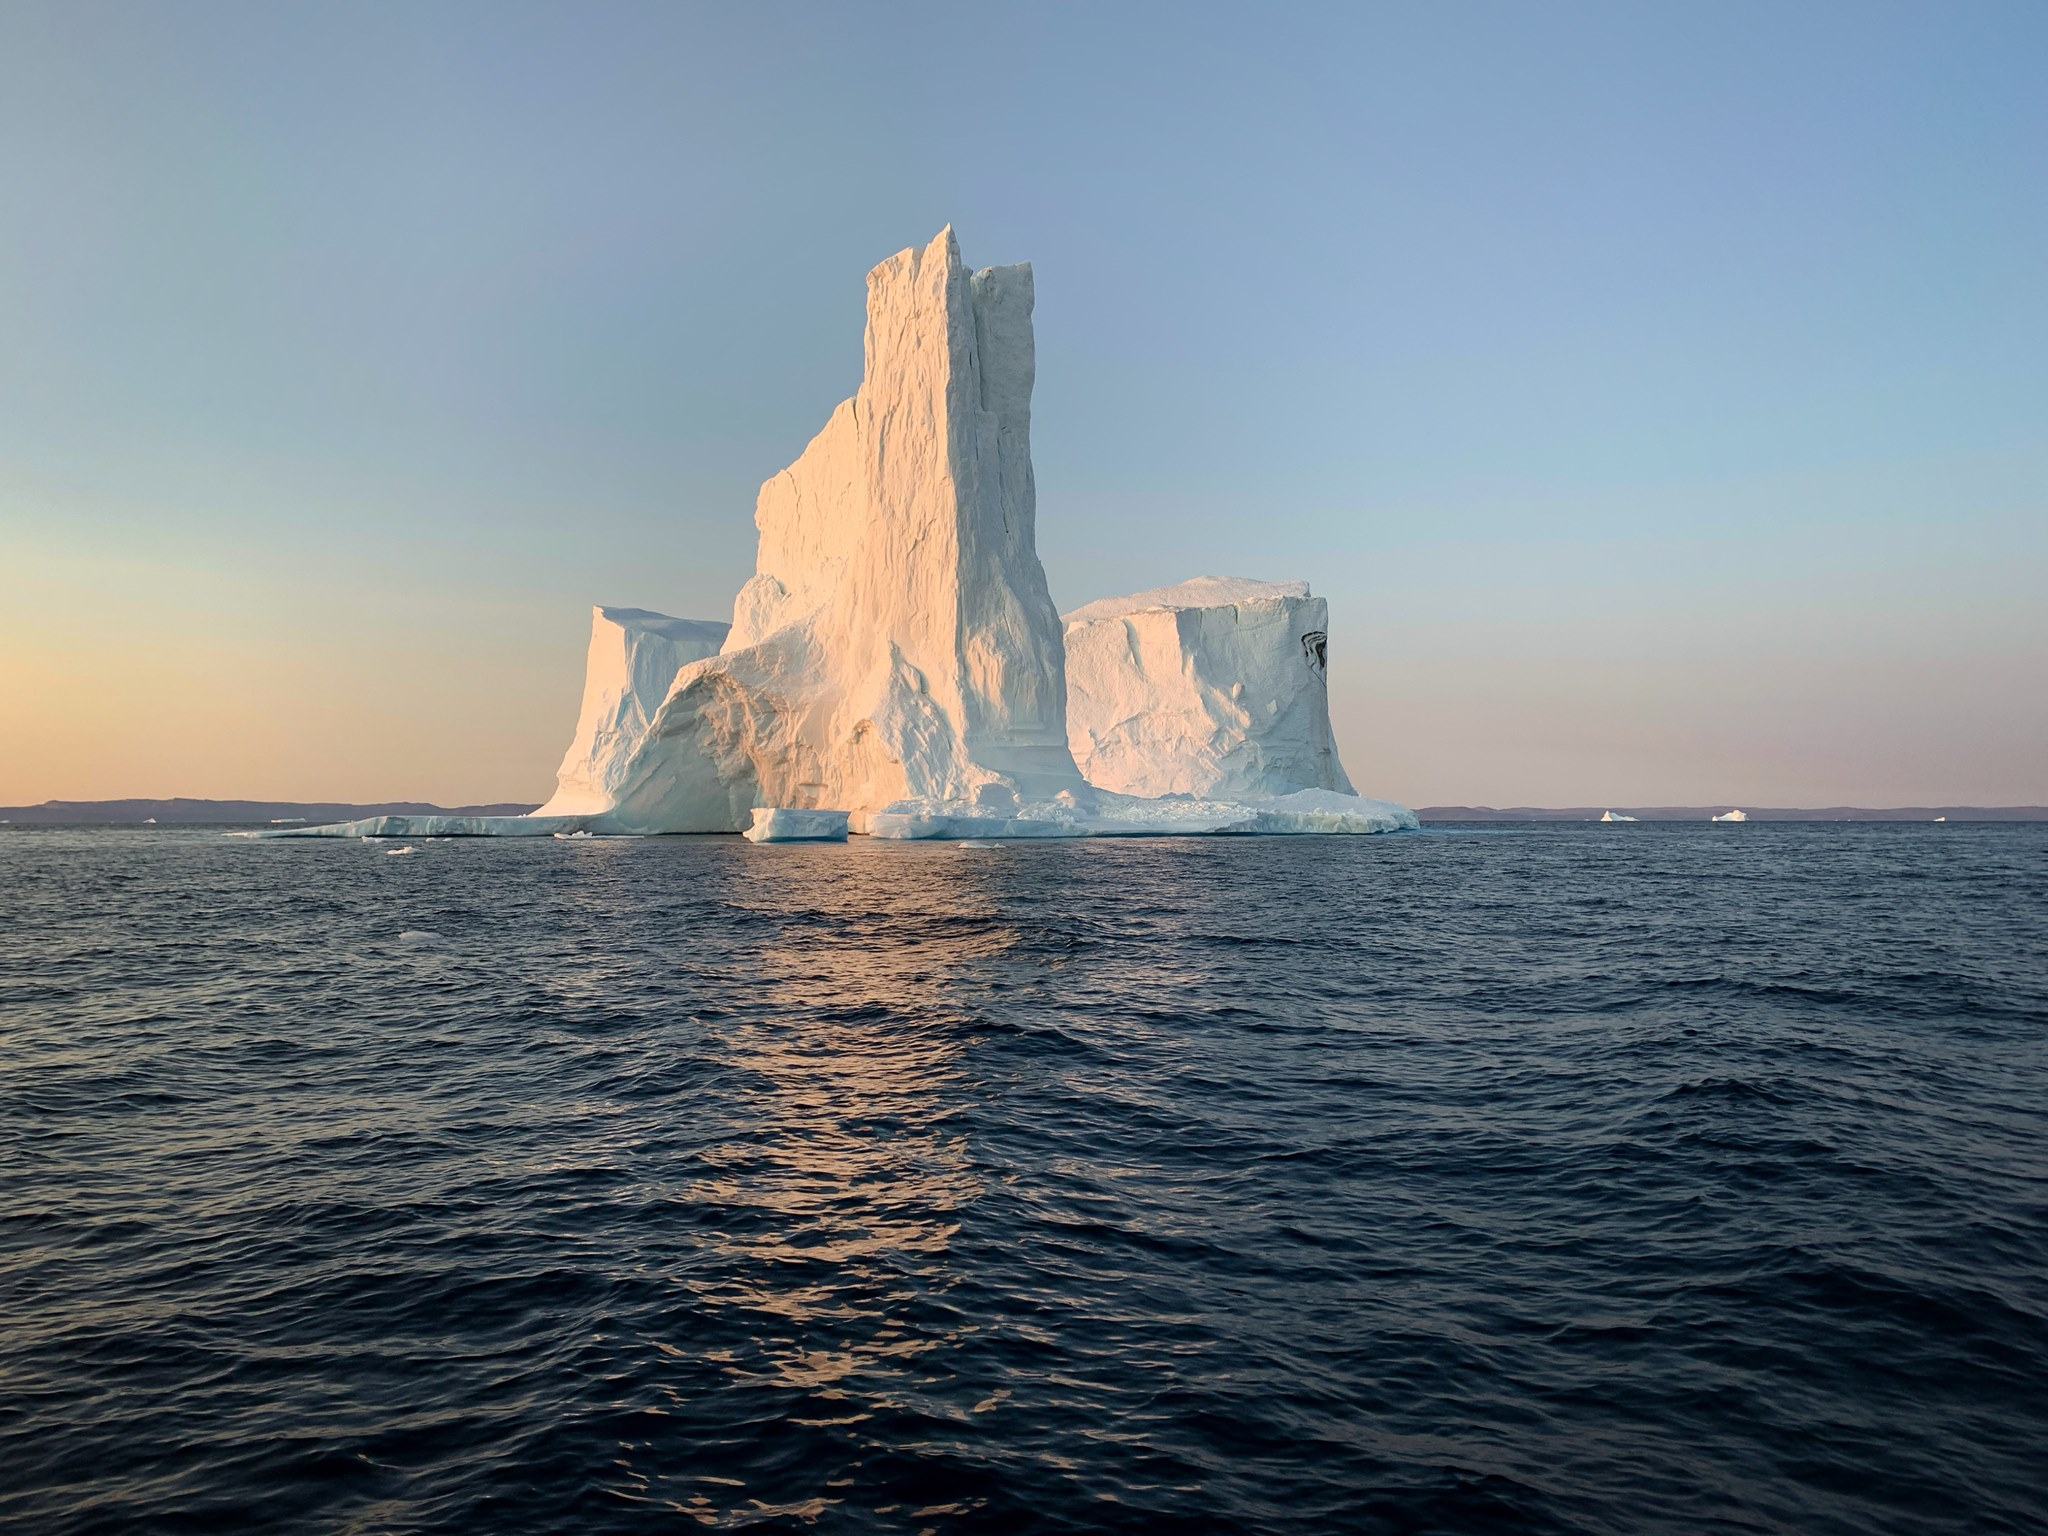 This stunning iceberg was not only beautiful, but huge!